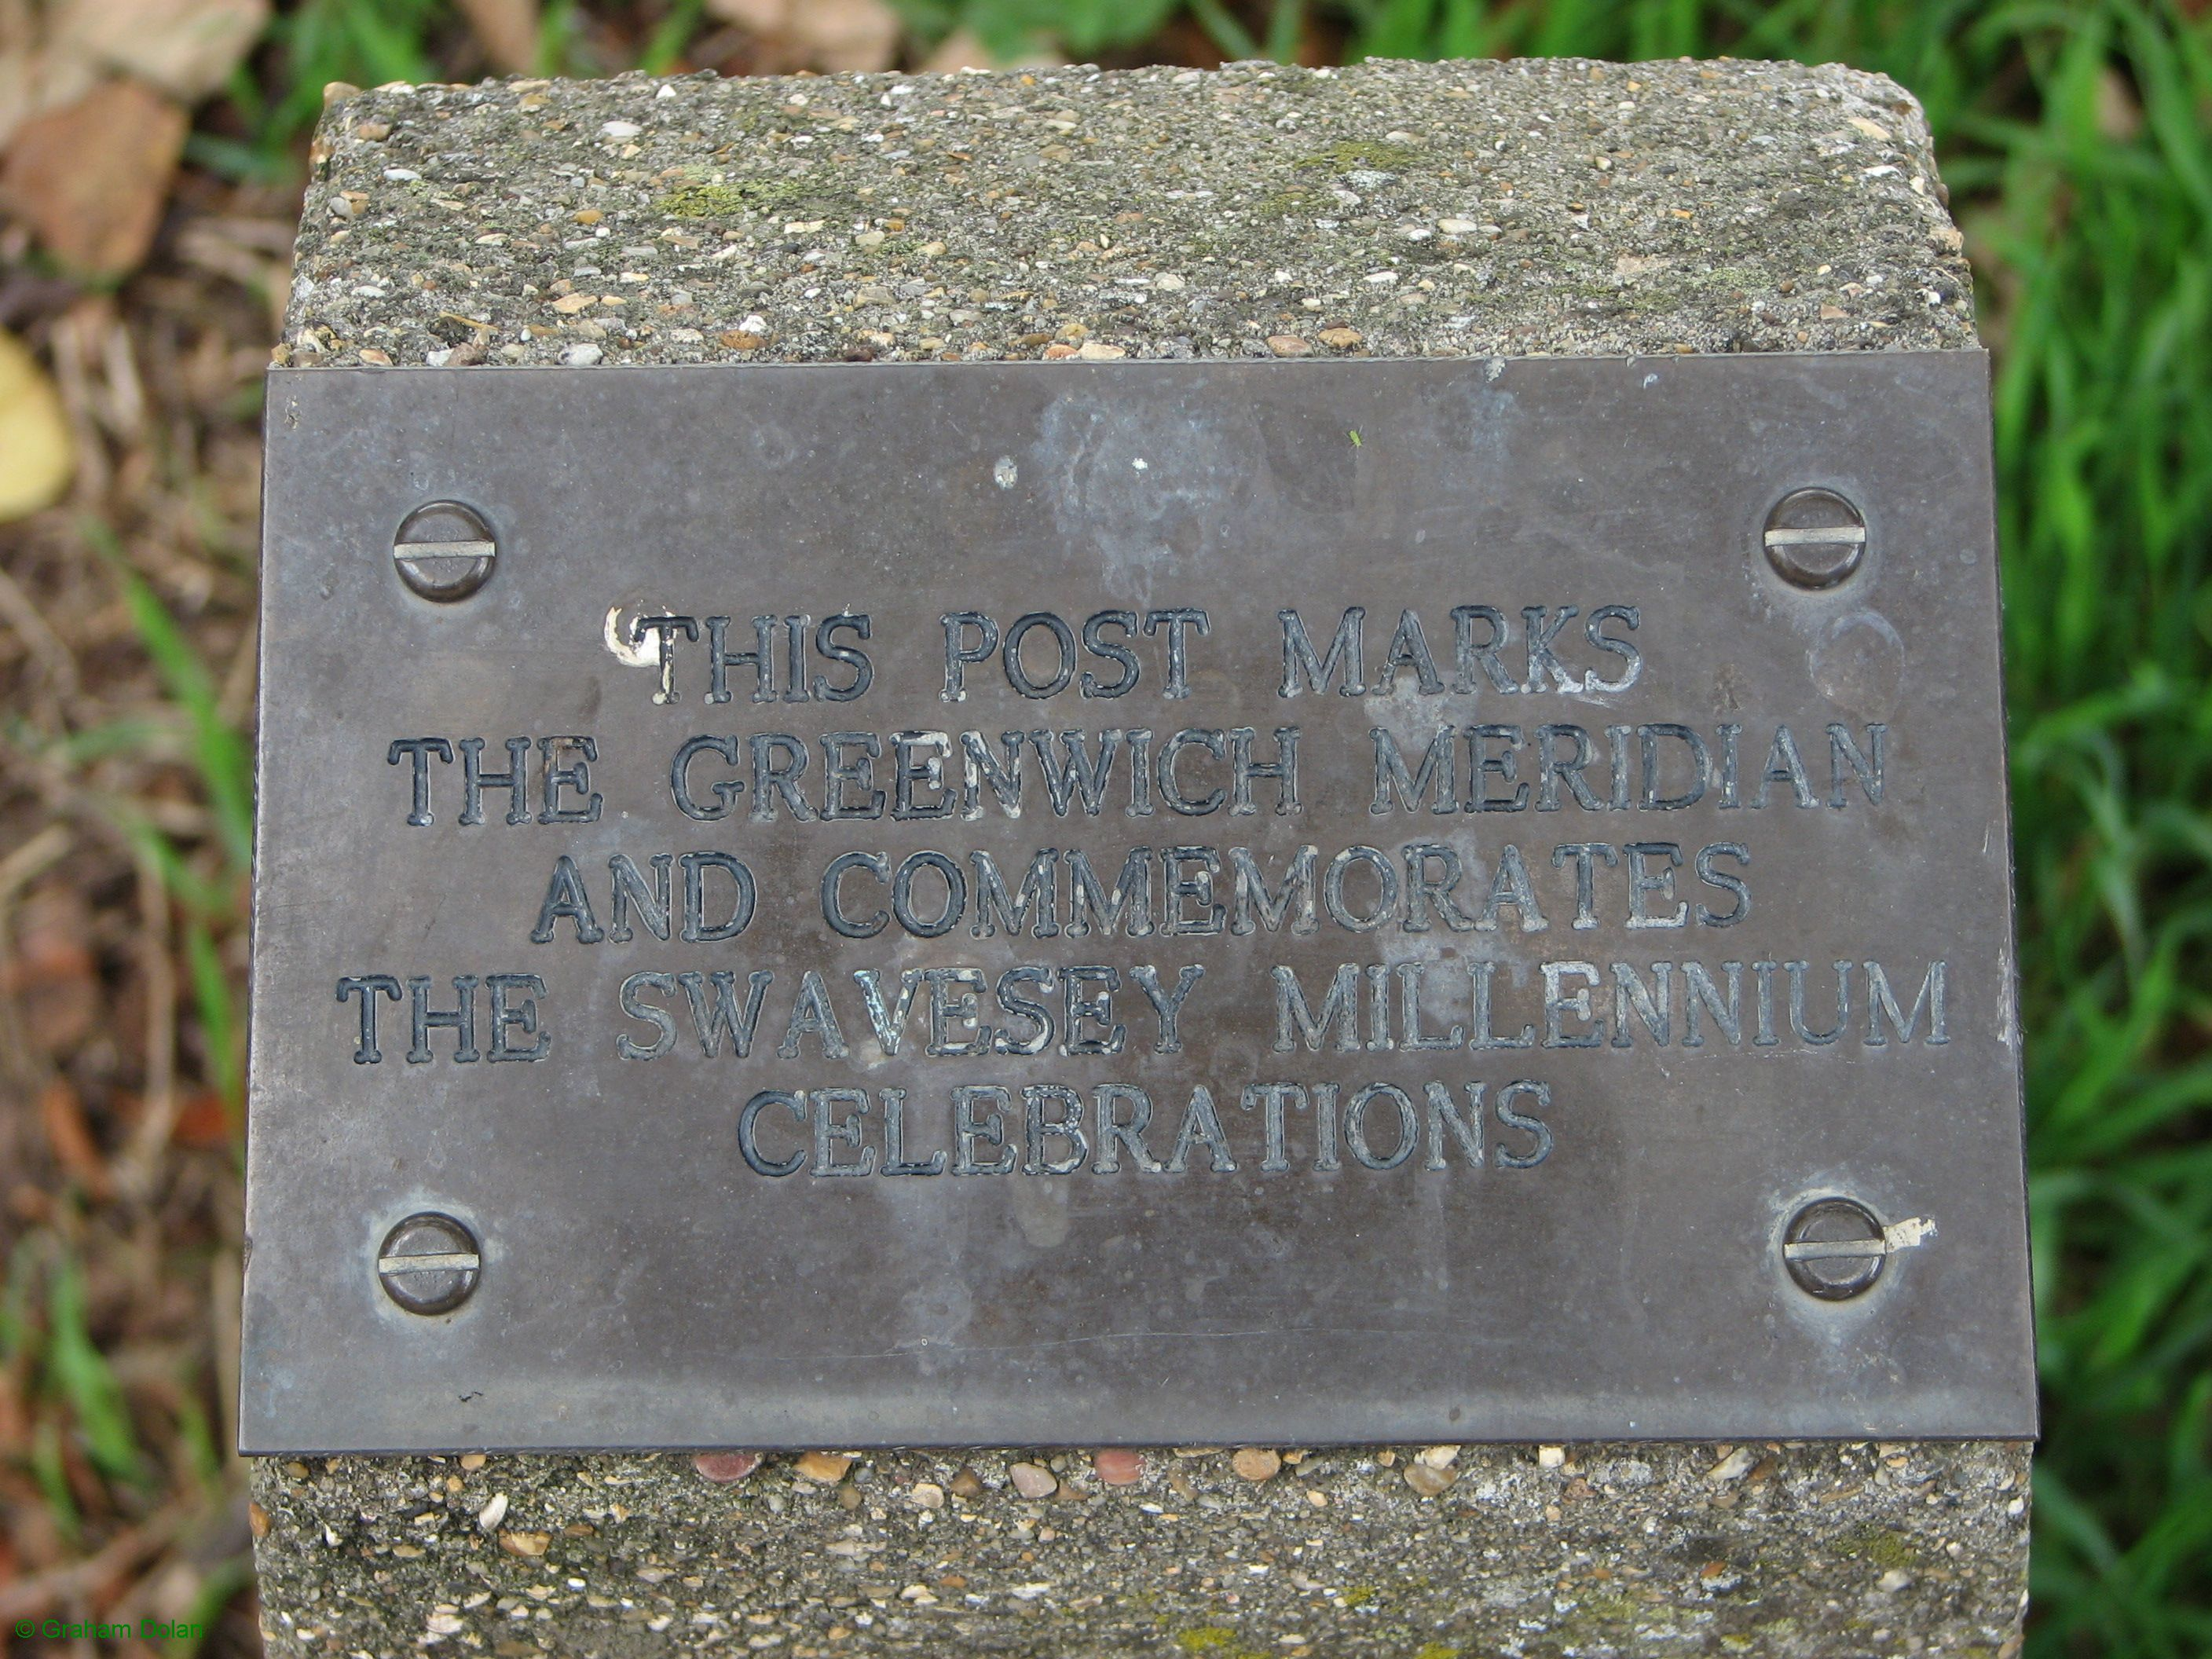 Greenwich Meridian Marker; England; Cambridgeshire; Swavesey